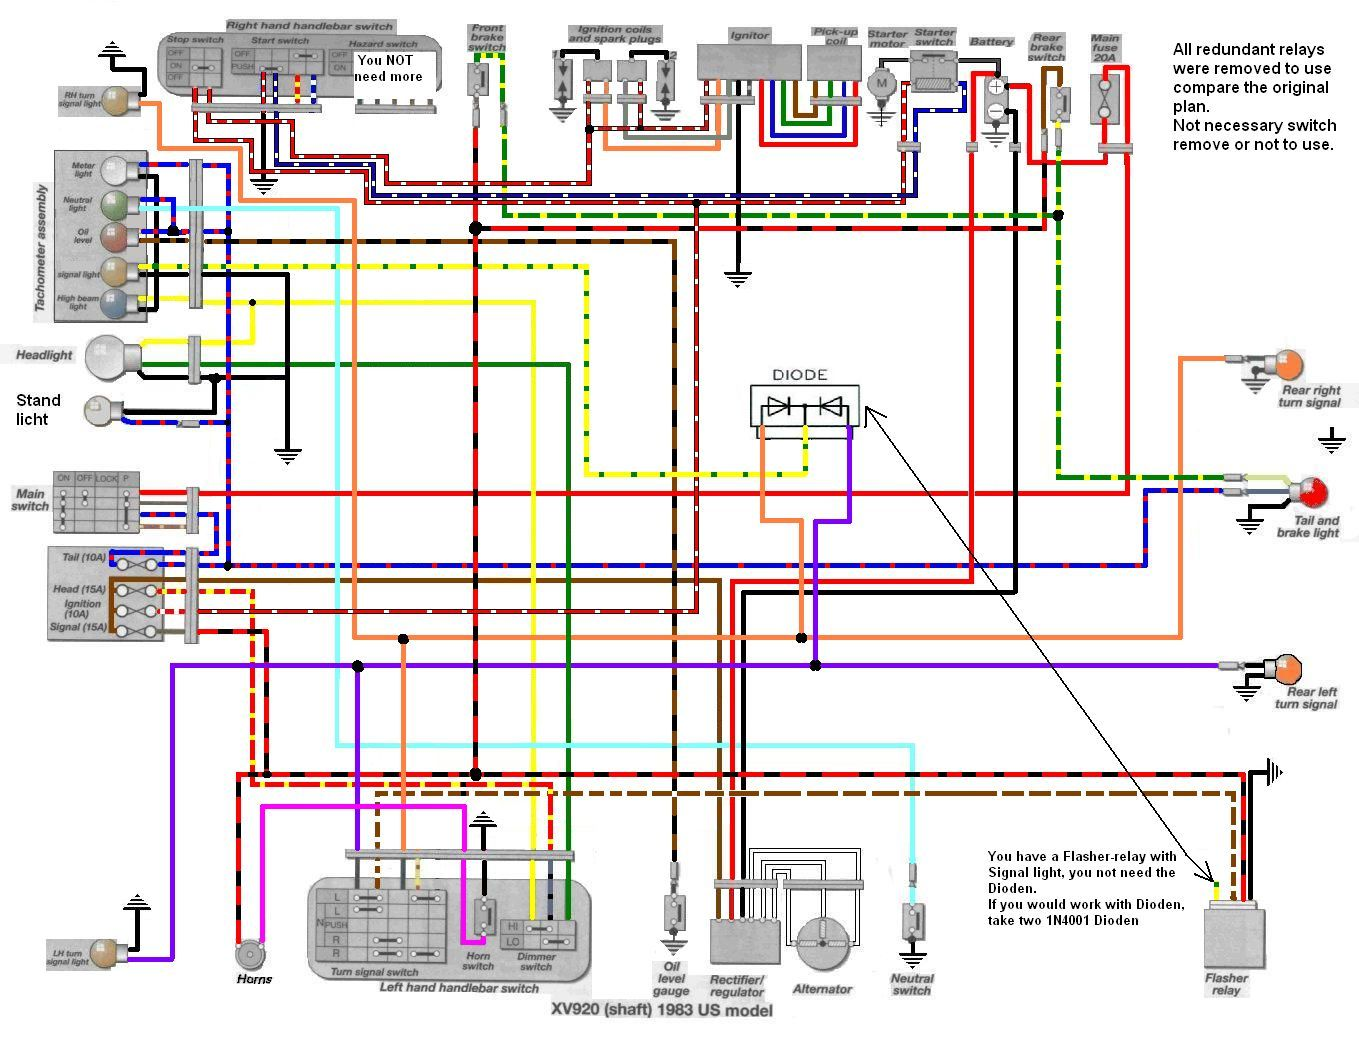 hight resolution of tr1 xv1000 xv920 wiring diagrams manfred s tr1 page all about wiring diagram virago bobber source yamaha xv